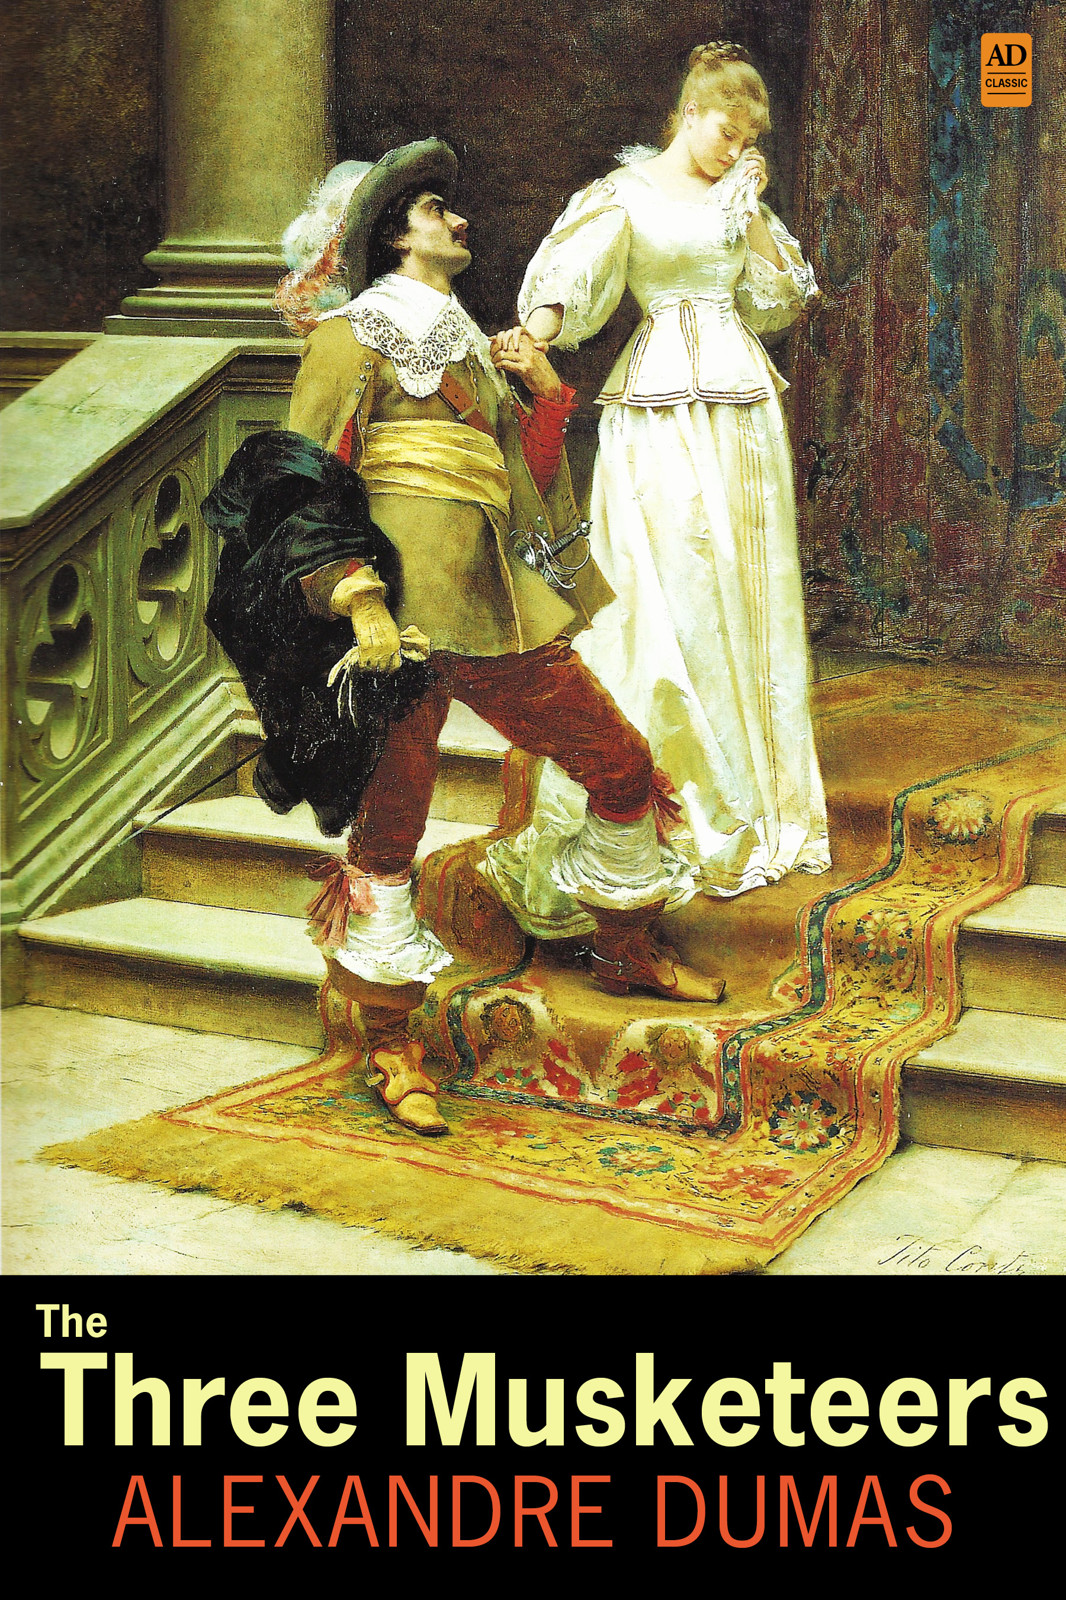 The Three Musketeers (AD Classic Illustrated) By: Alexandre Dumas